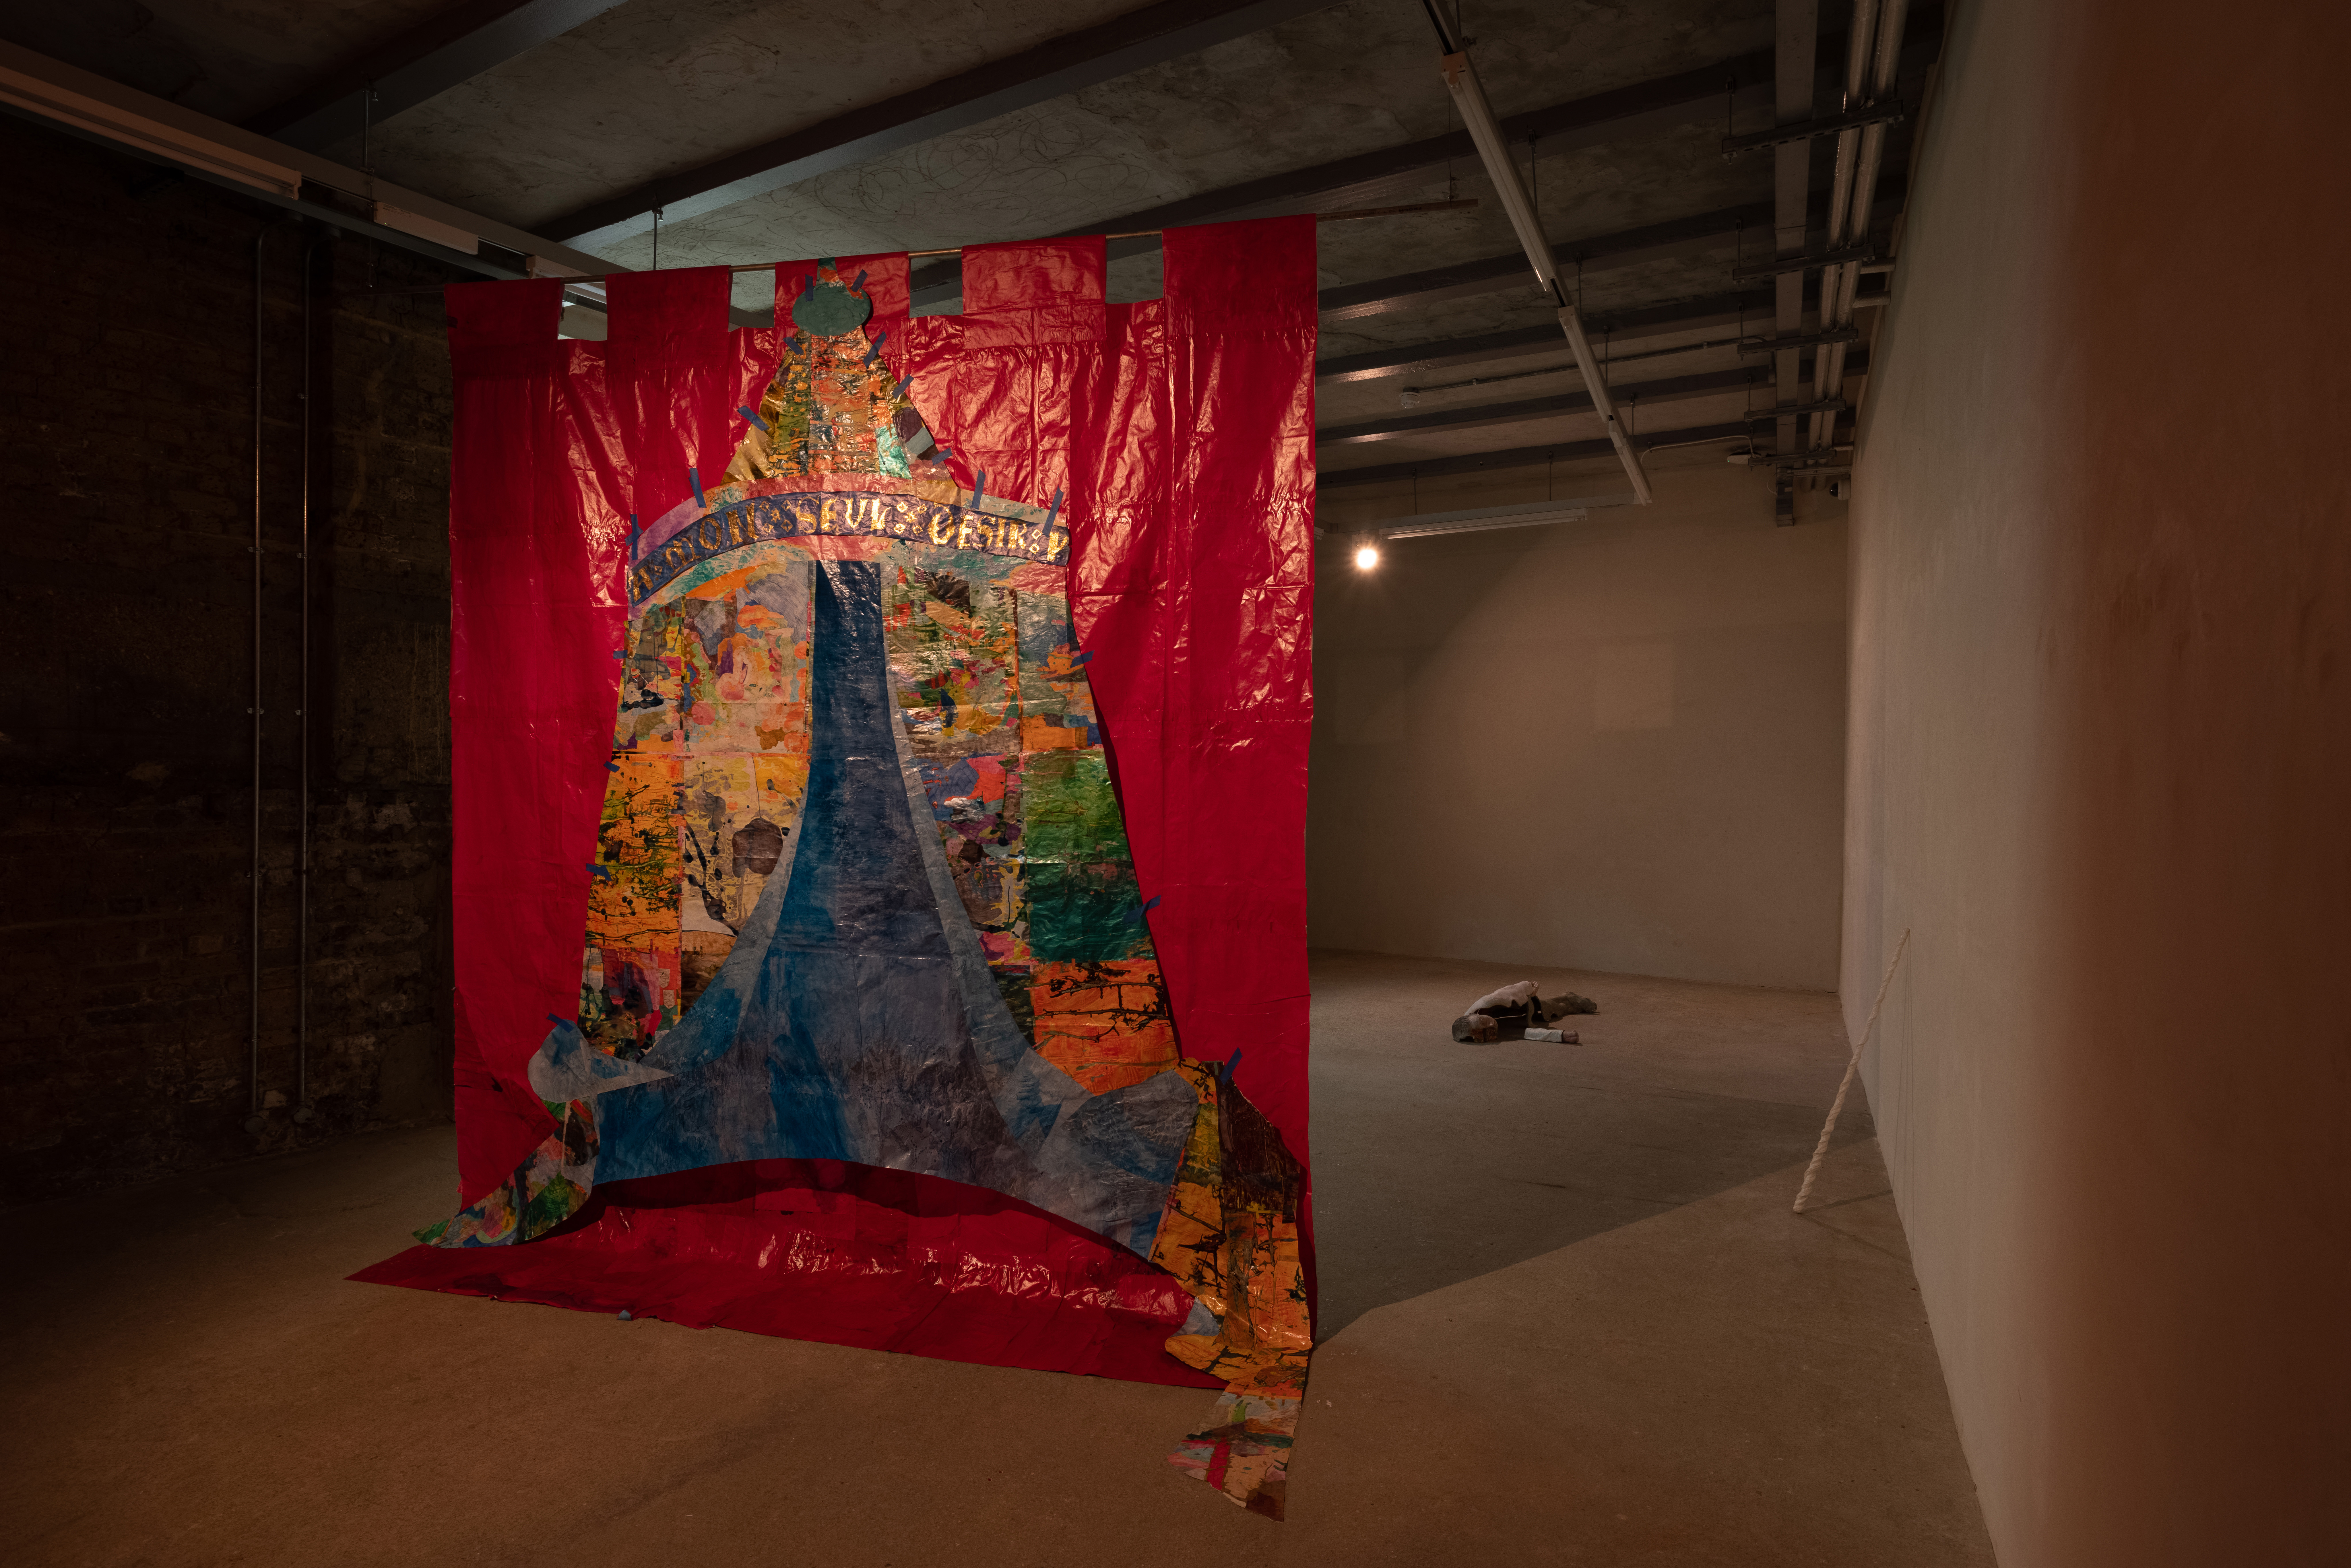 a large paper collage of a multicoloured tent on a red background hangs in the middle of a gallery. The words 'A Mon Seul Desire' run along the top of the tent. Behind the collage, a unicorn horn rests against the wall, and behind the horn is a sculpture of a reclining figure.